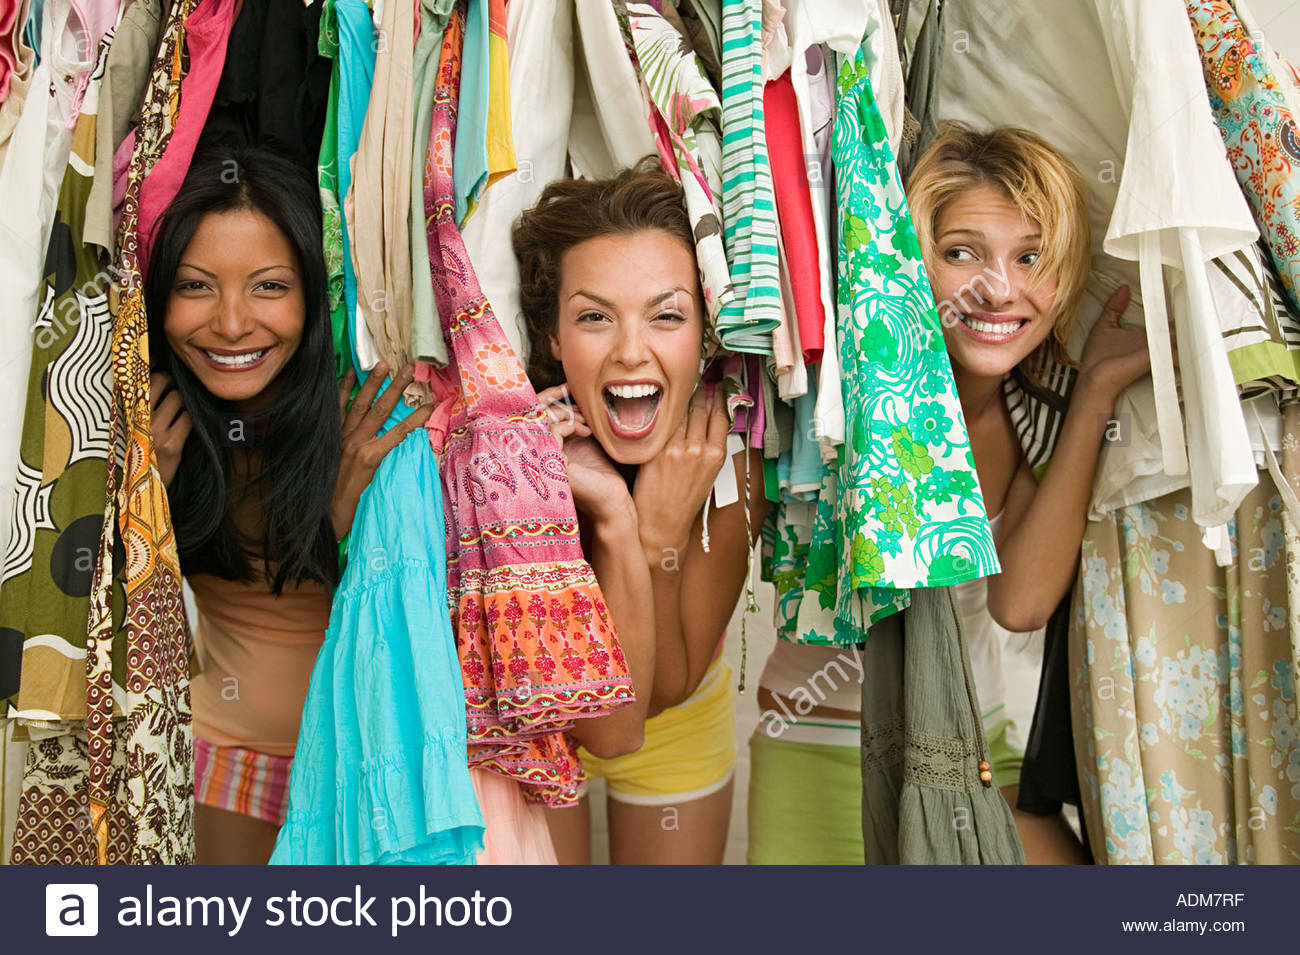 Friends looking through hanging clothes - Stock Image